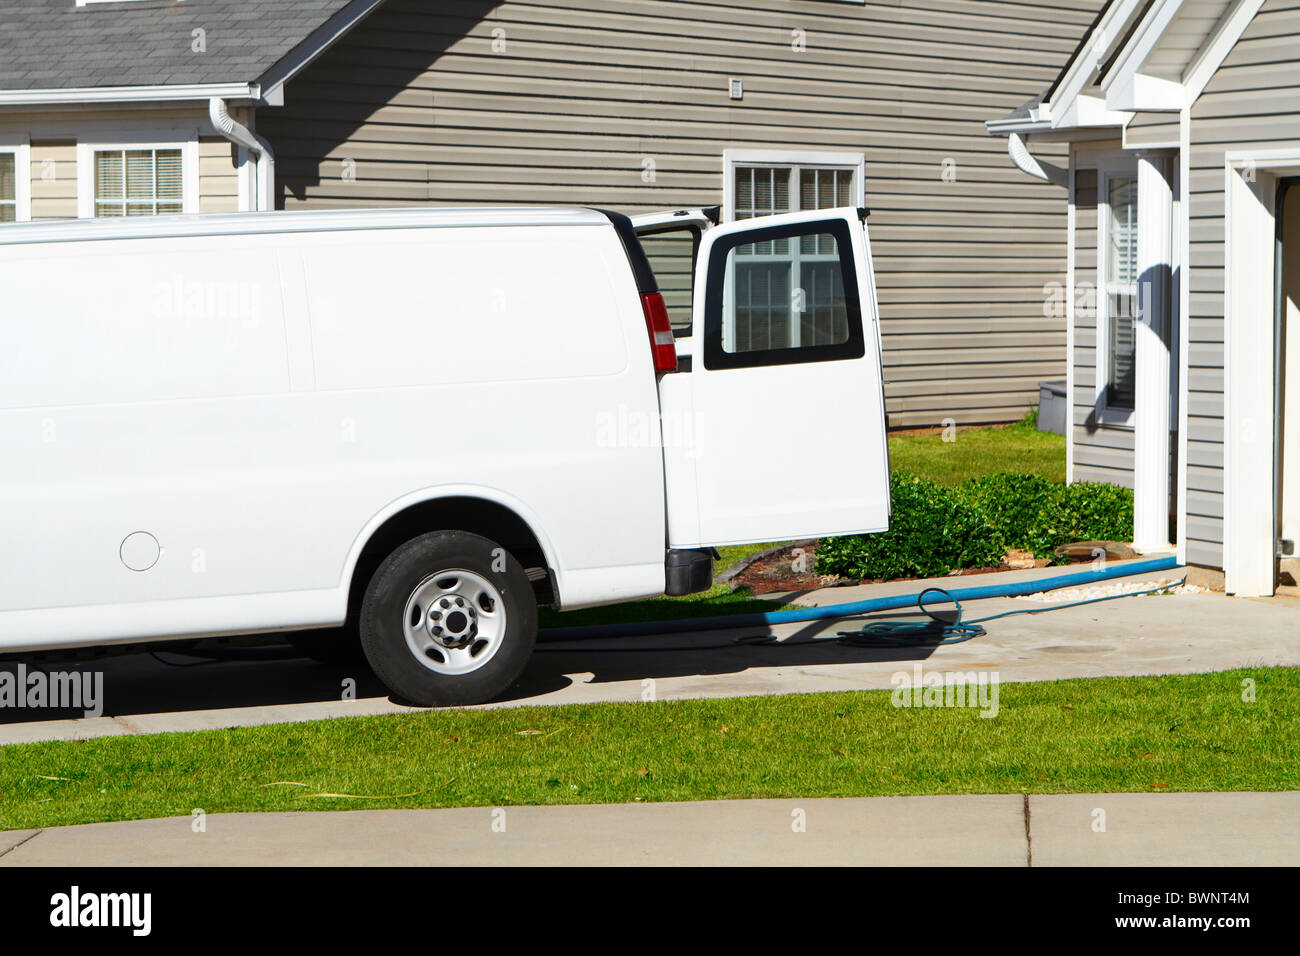 Professional carpet & upholstery cleaning service van with hoses coming out the back of the vehicle in an American Stock Photo